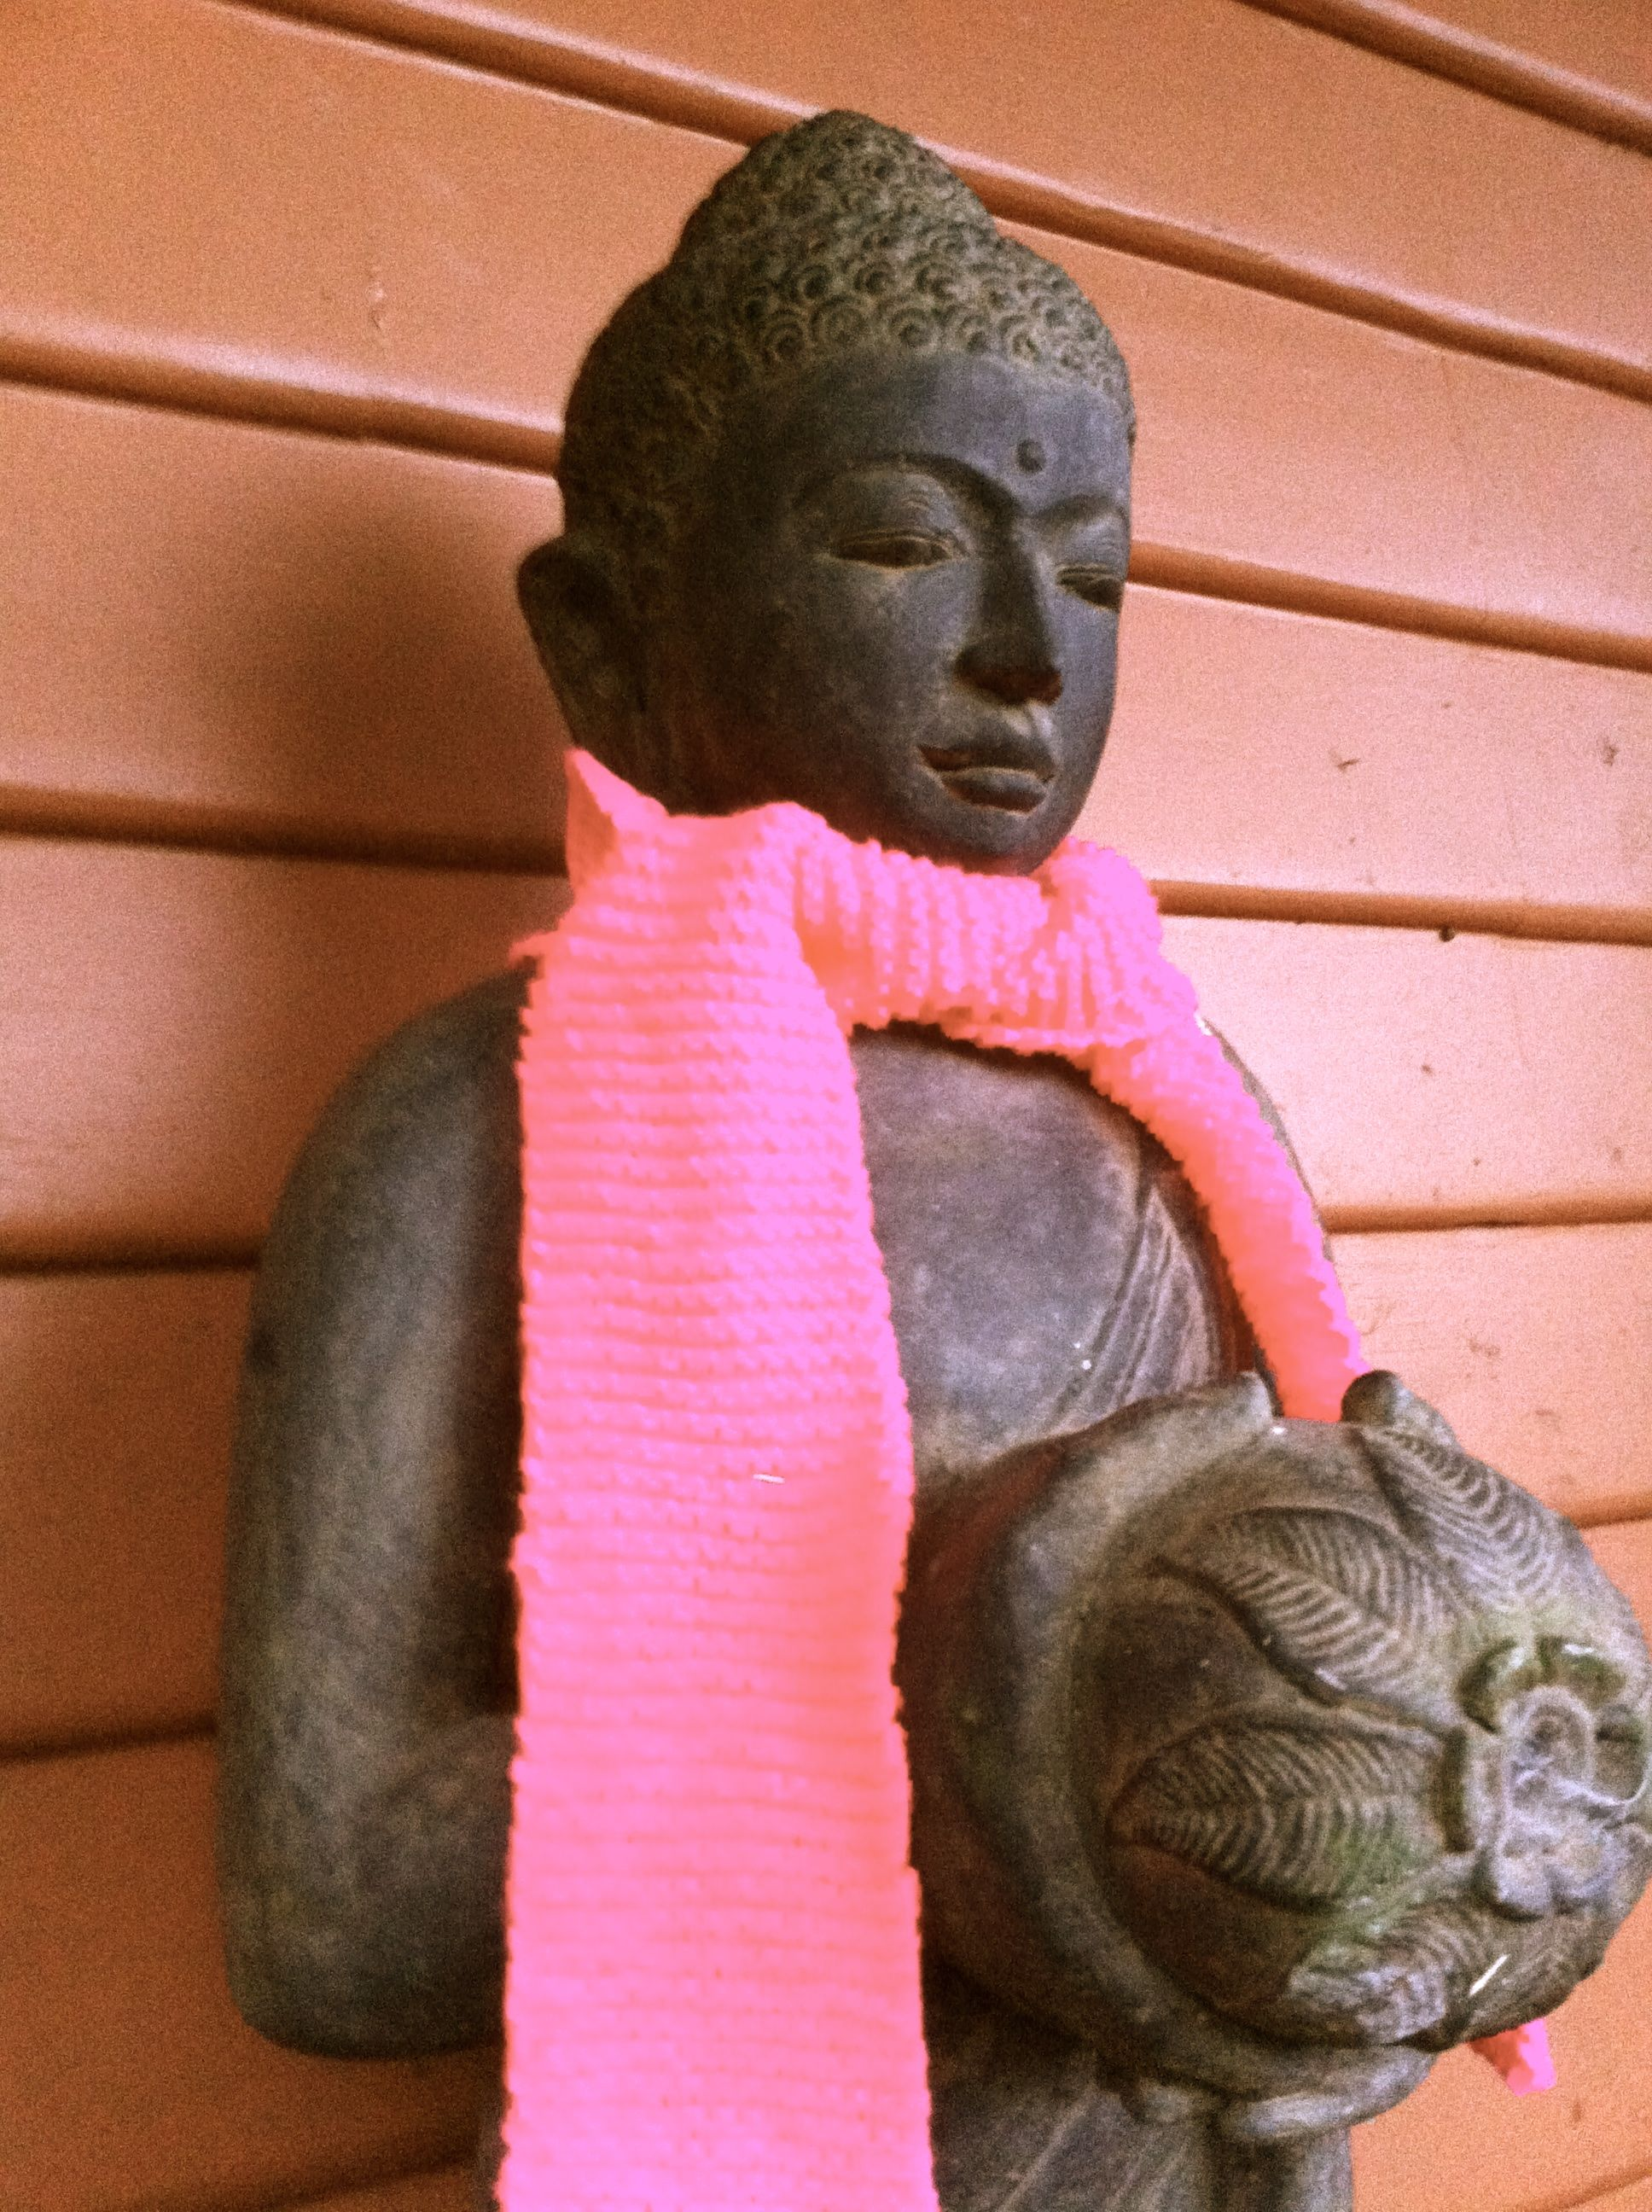 bandana buddhist single men Michael harrigan patterns designers this bandana-style scarf is basically a triangular knit from the top down all elements found in buddhist temples.